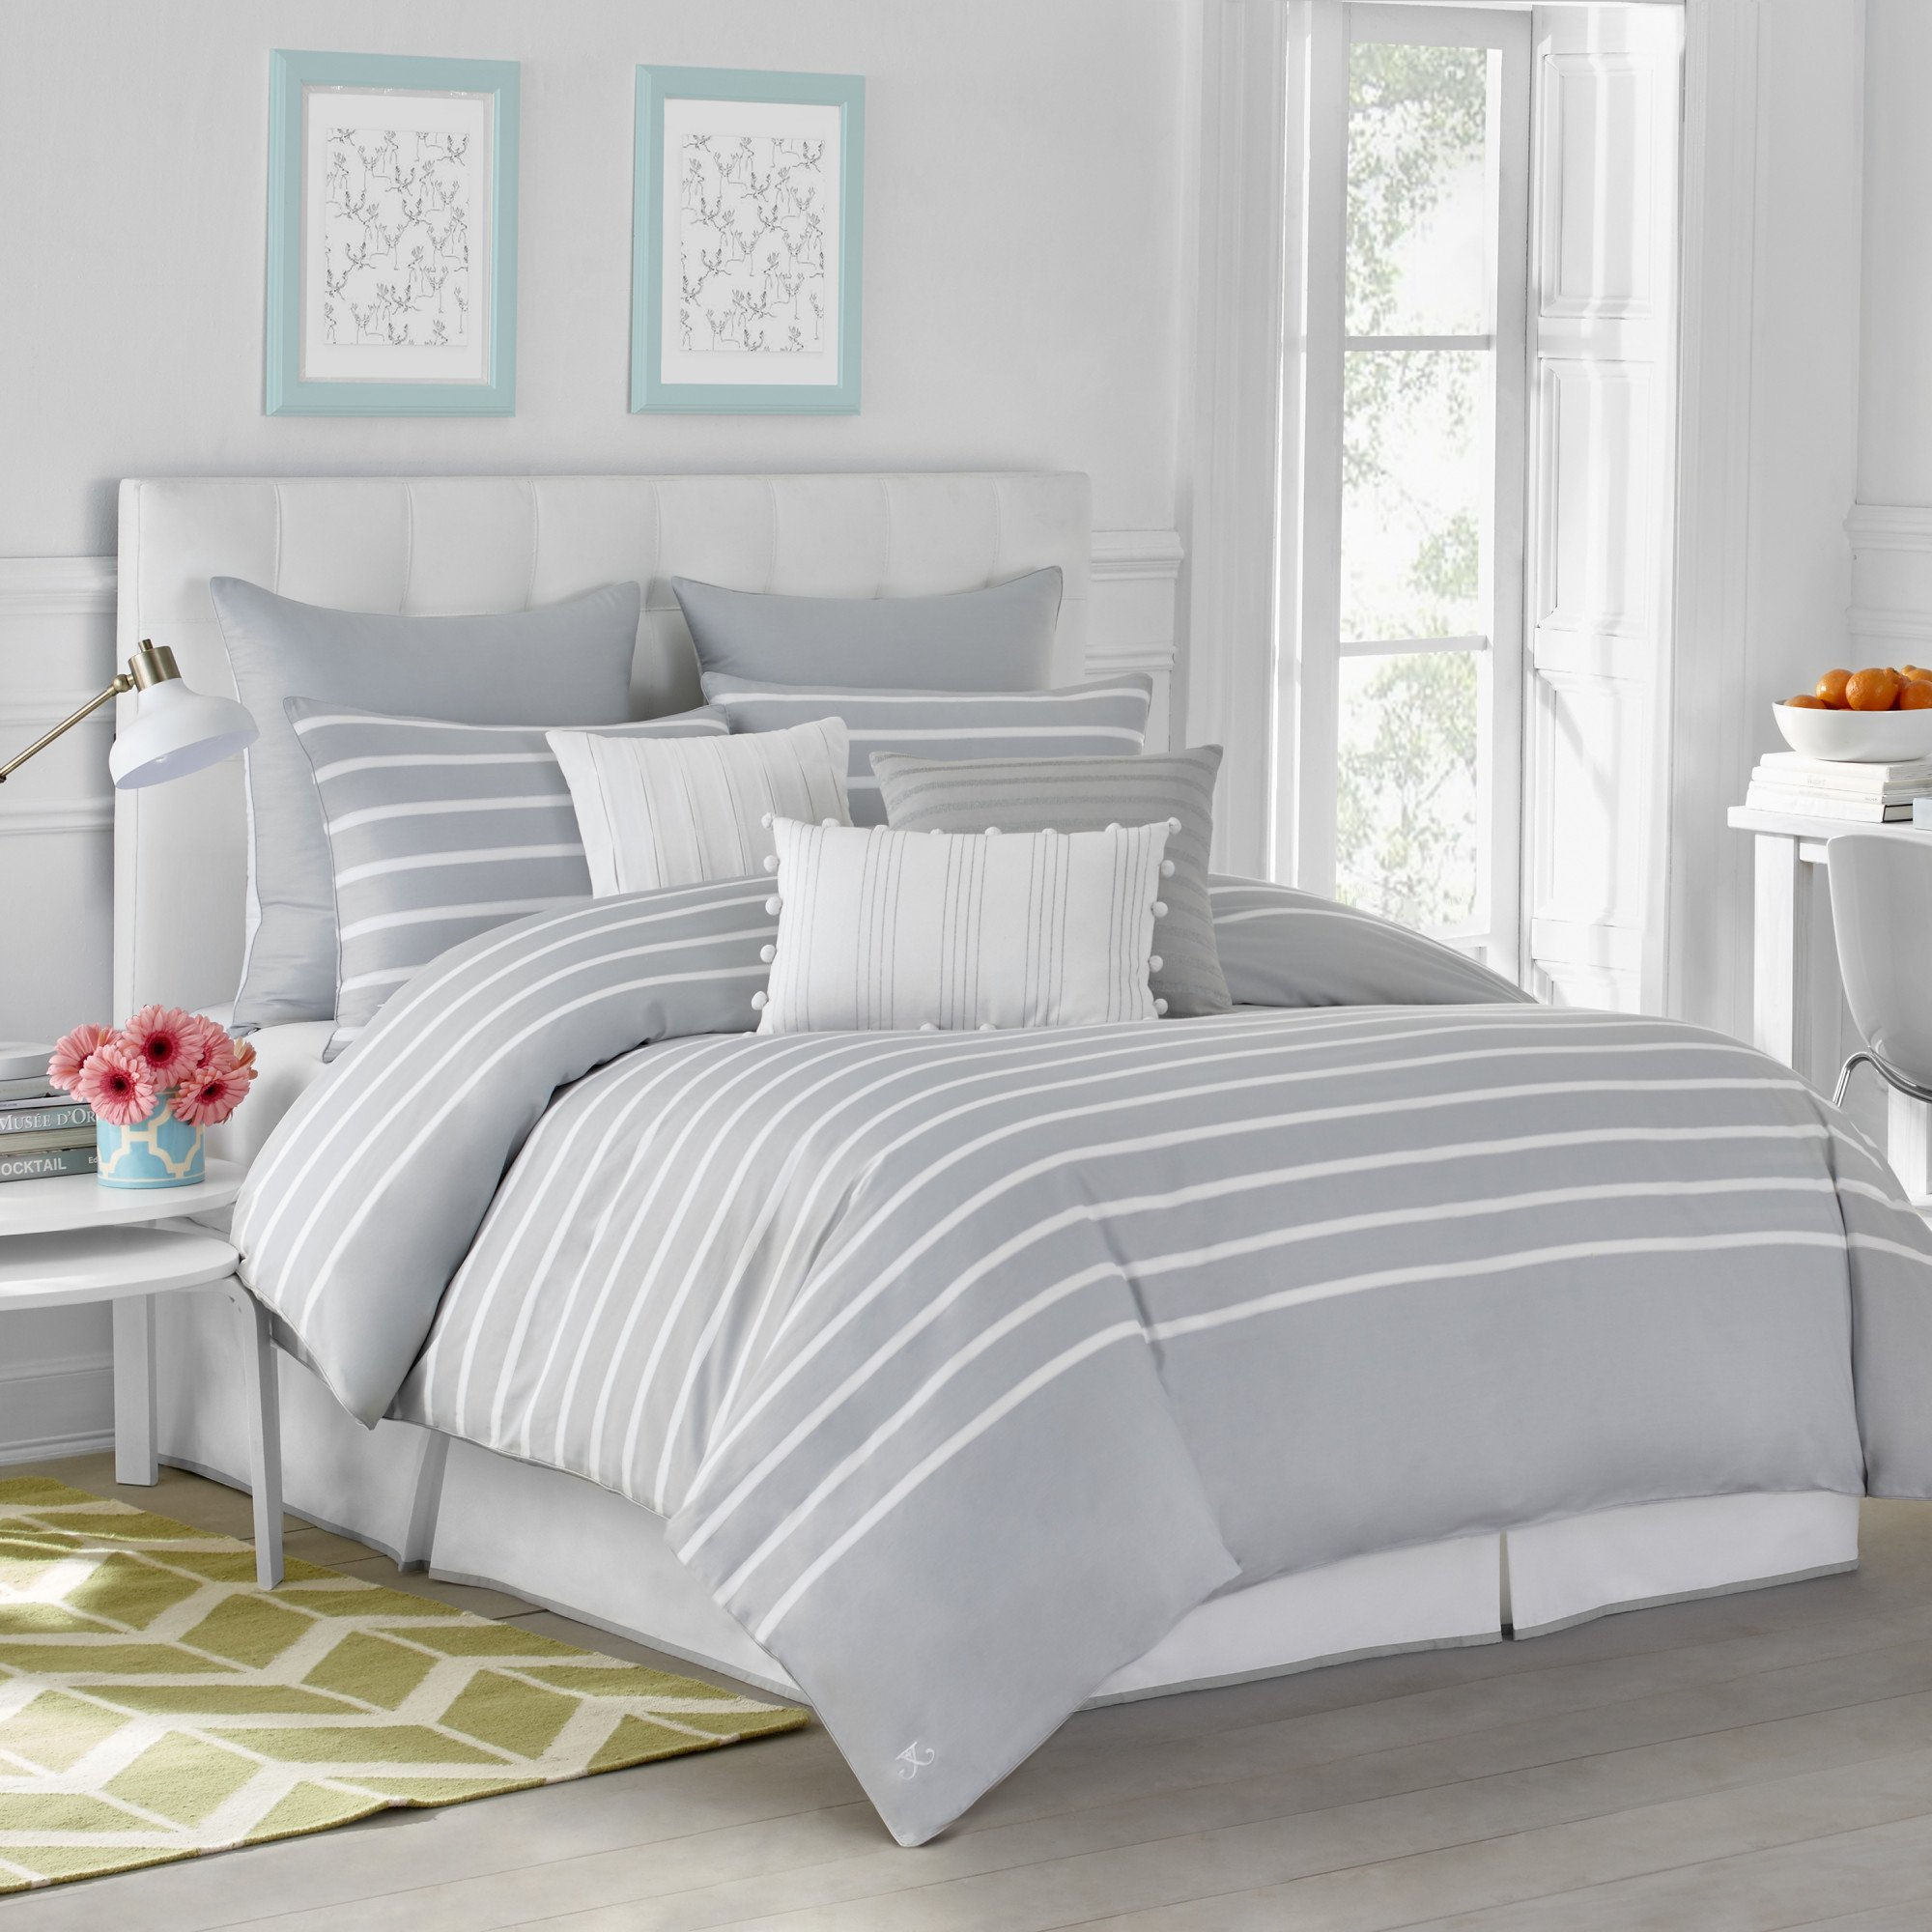 CAPRI STRIPE DUVET COVER BY JILL ROSENWALD - Twin, Cotton, Soft, Reversible, Patterned, Graphic, Modern Bedroom - Twin, Pearl Gray